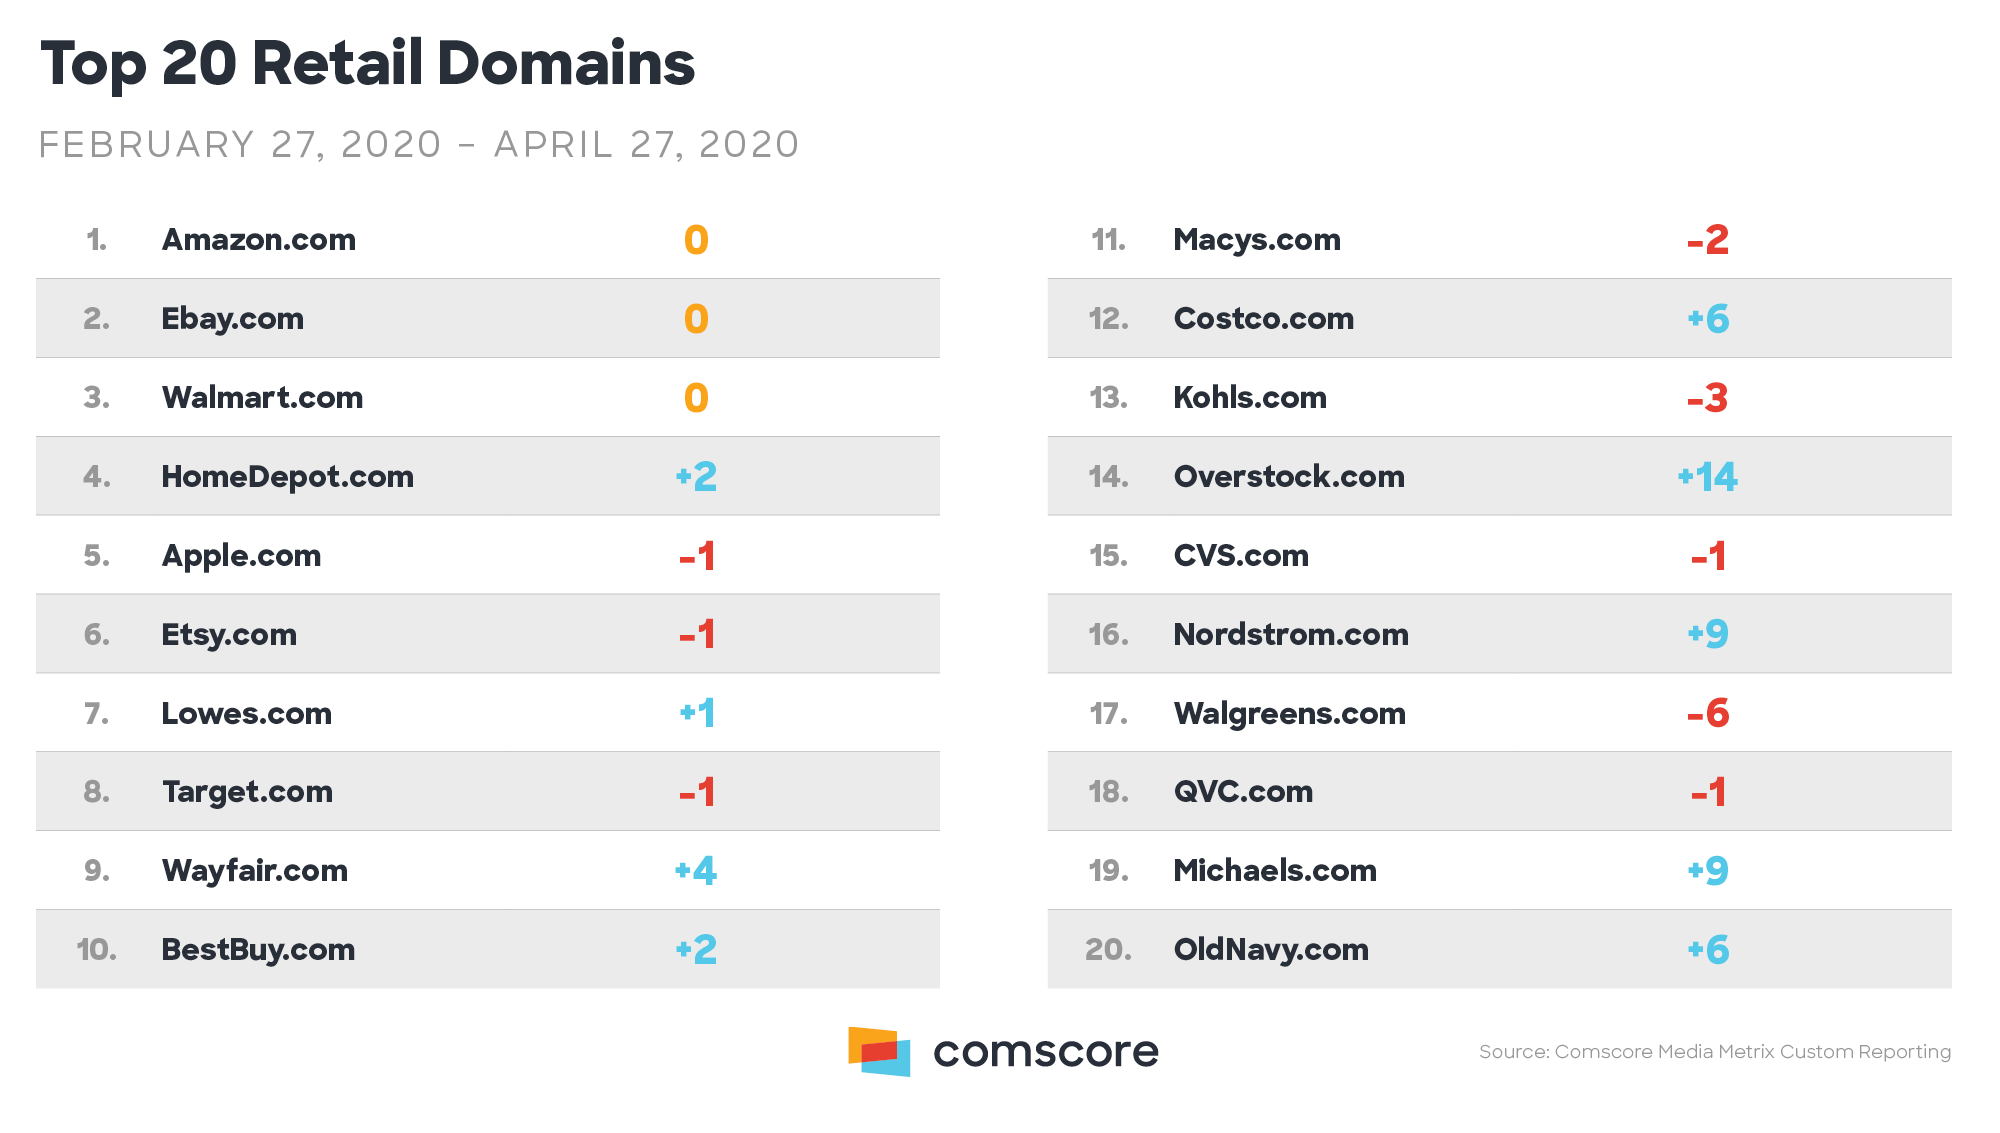 Top 20 Retail Domains